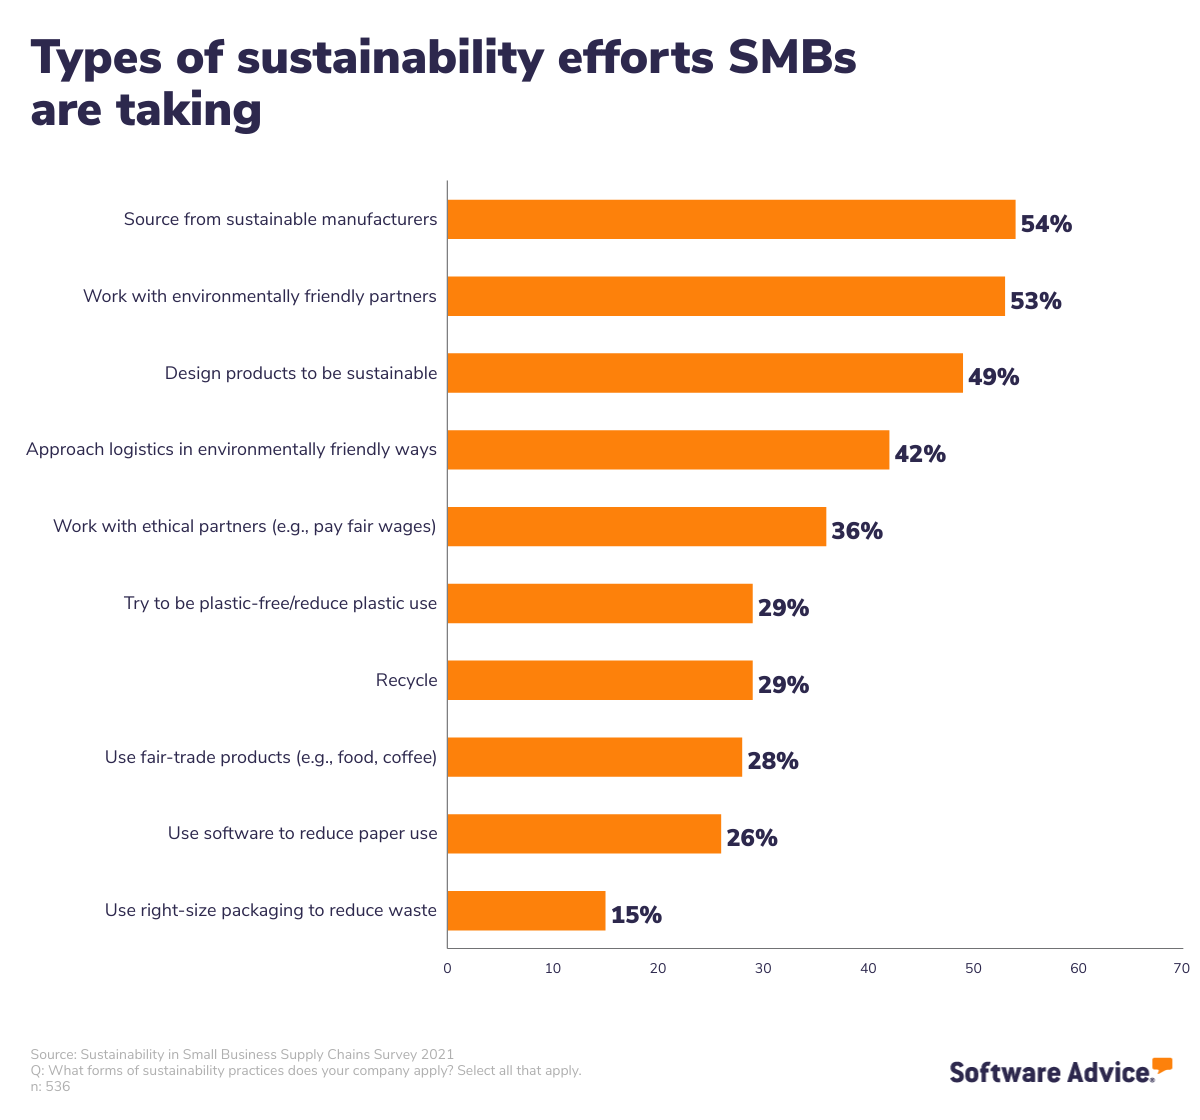 Types of sustainability efforts SMBs are taking